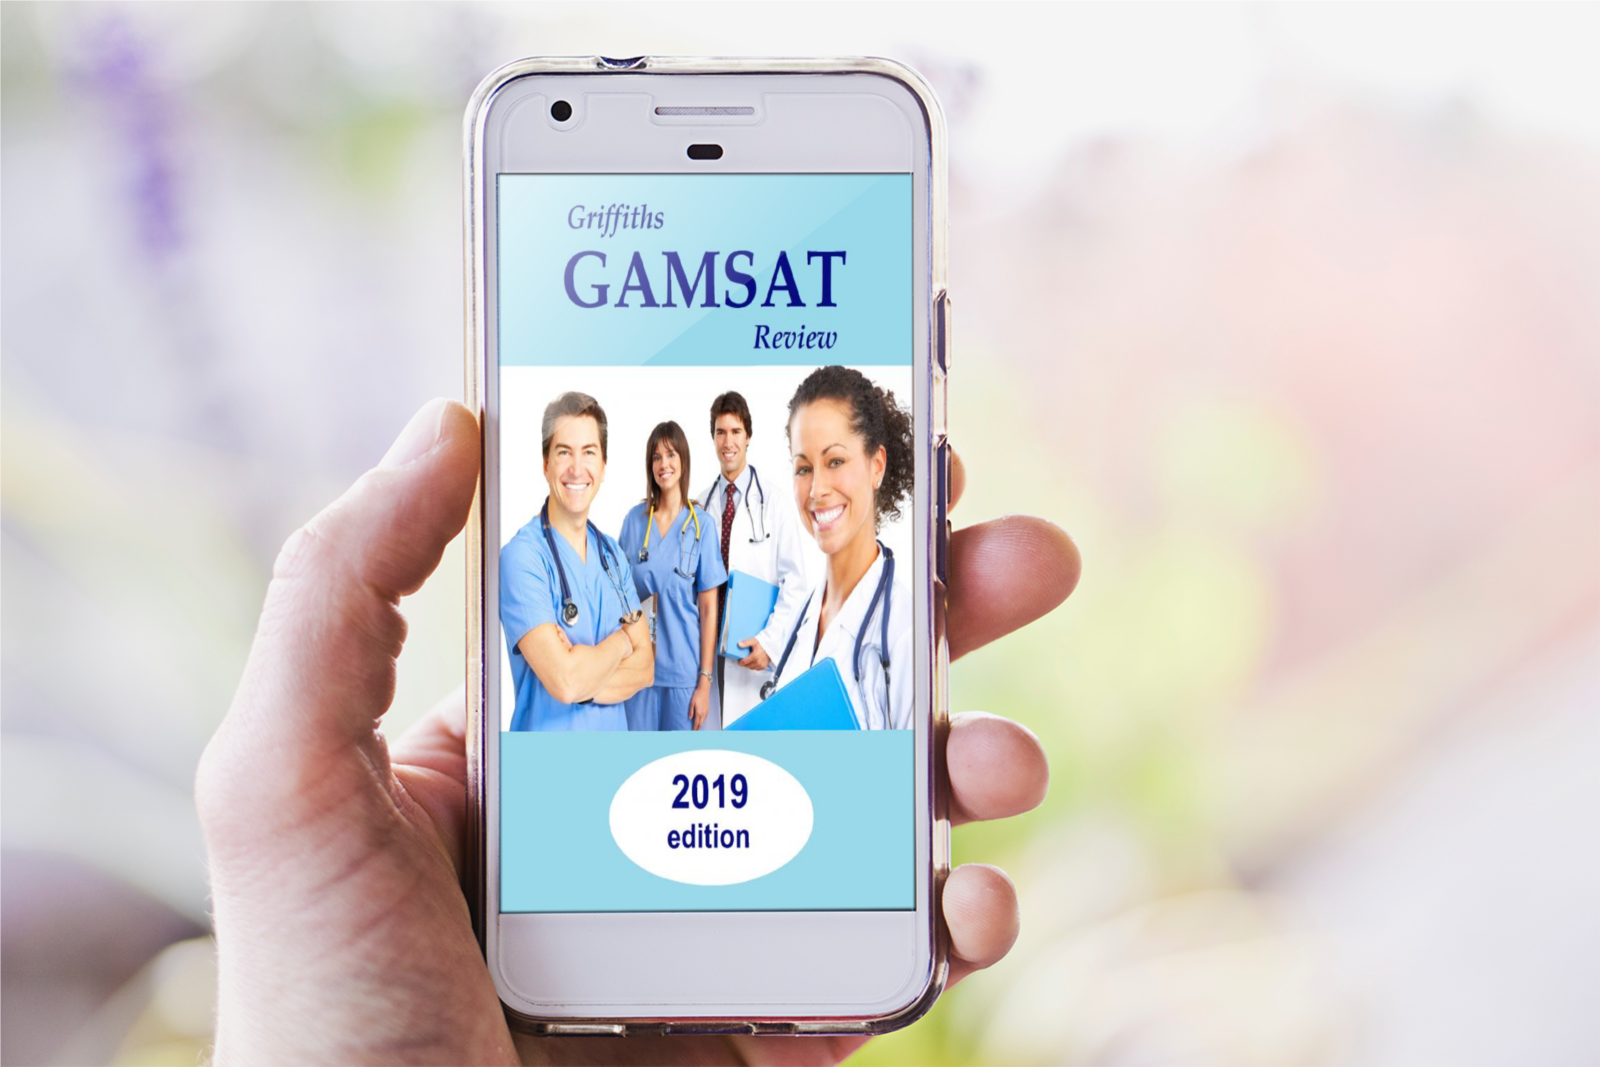 Gamsat Review on mobile phone